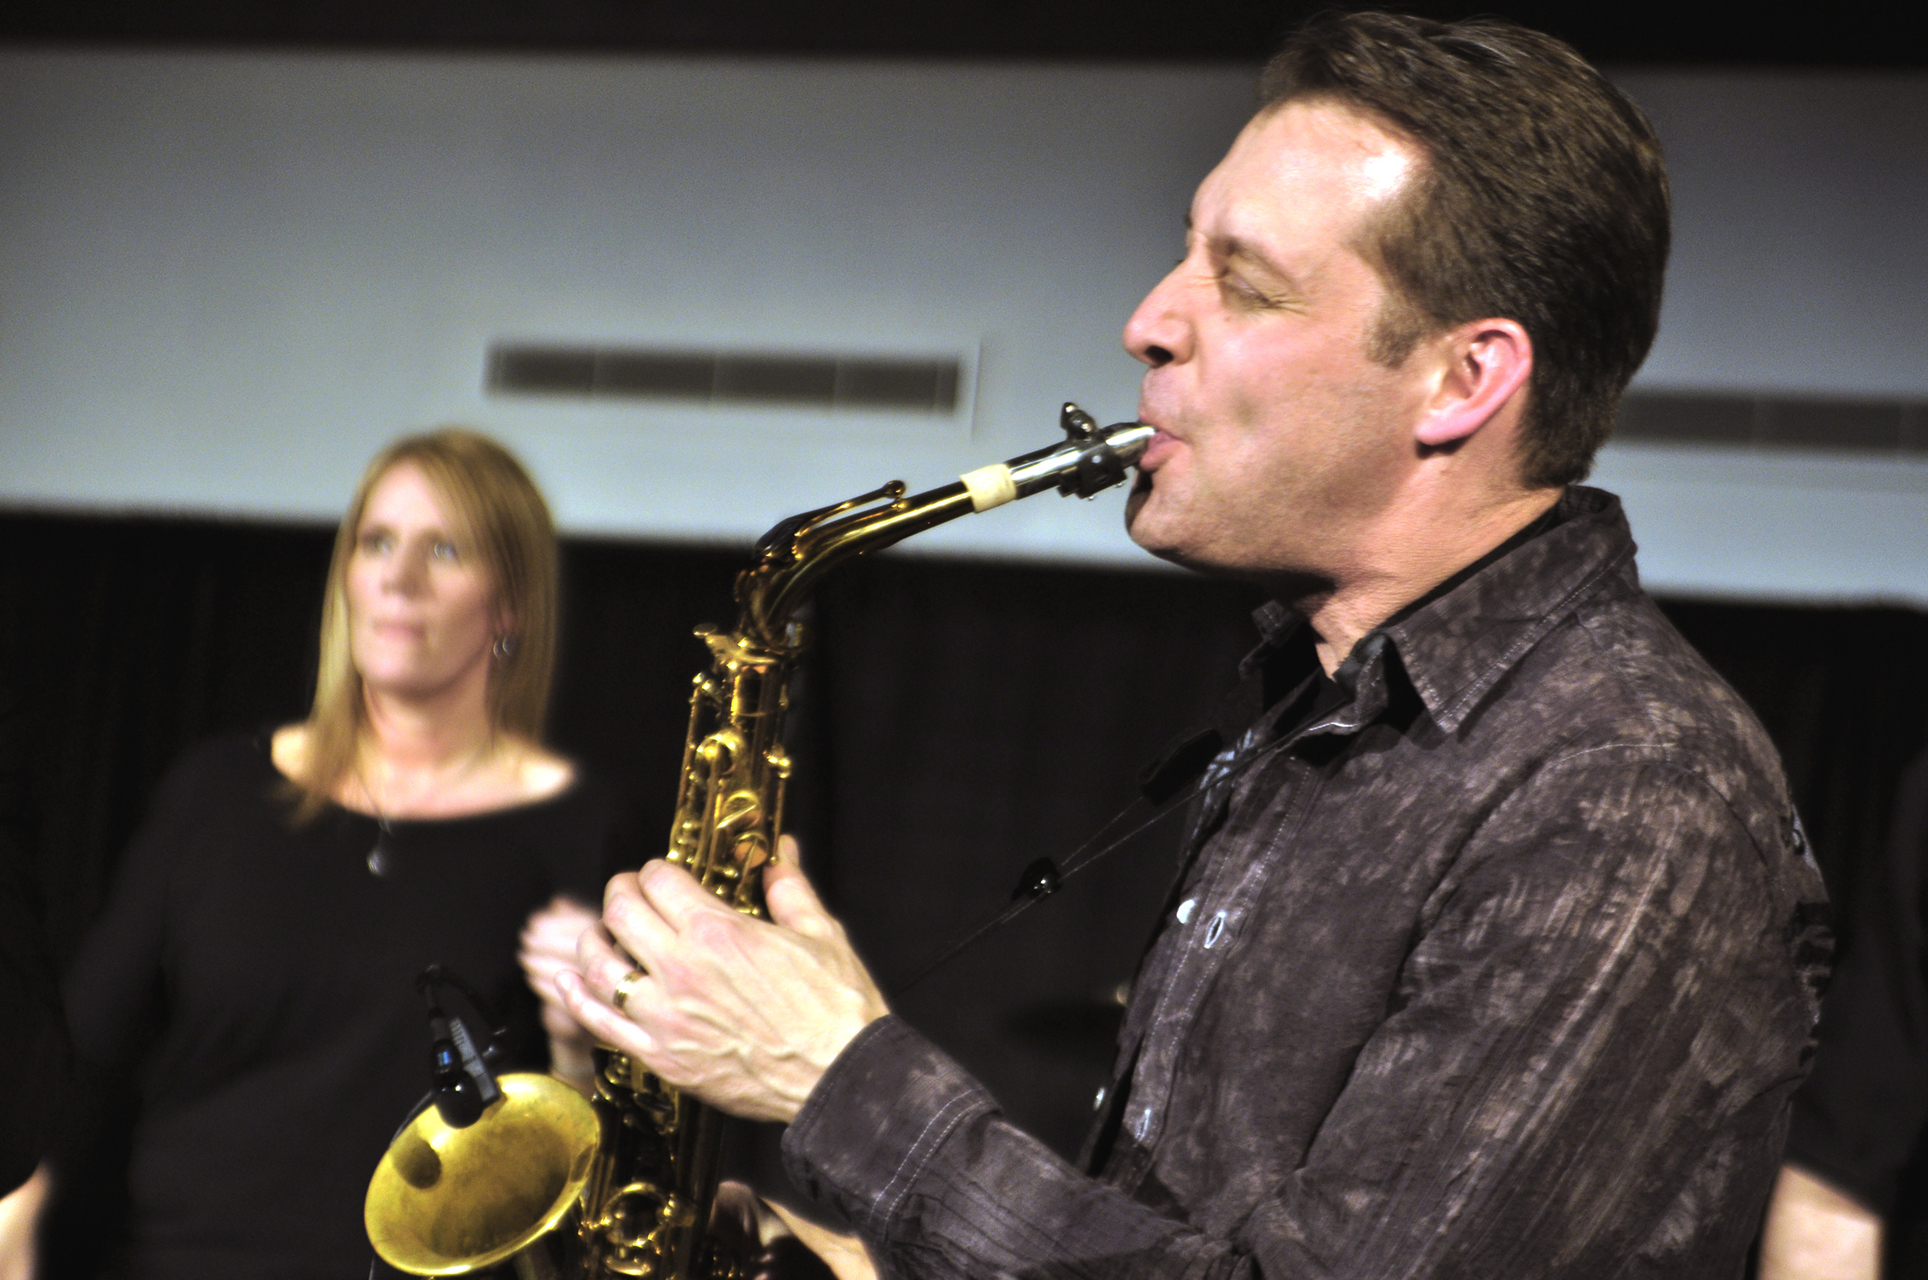 Photo by Rachel Torgerson. Russ Peterson, who plays alto sax in the band Post Traumatic Funk Syndrome by night, is also a professor in Hvidsten Hall of Music by day. PTFS rocked the Centrum Friday Jan. 27 with songs by Chicago, The Blue Brothers, Stevie Wonder, and other musical artists.